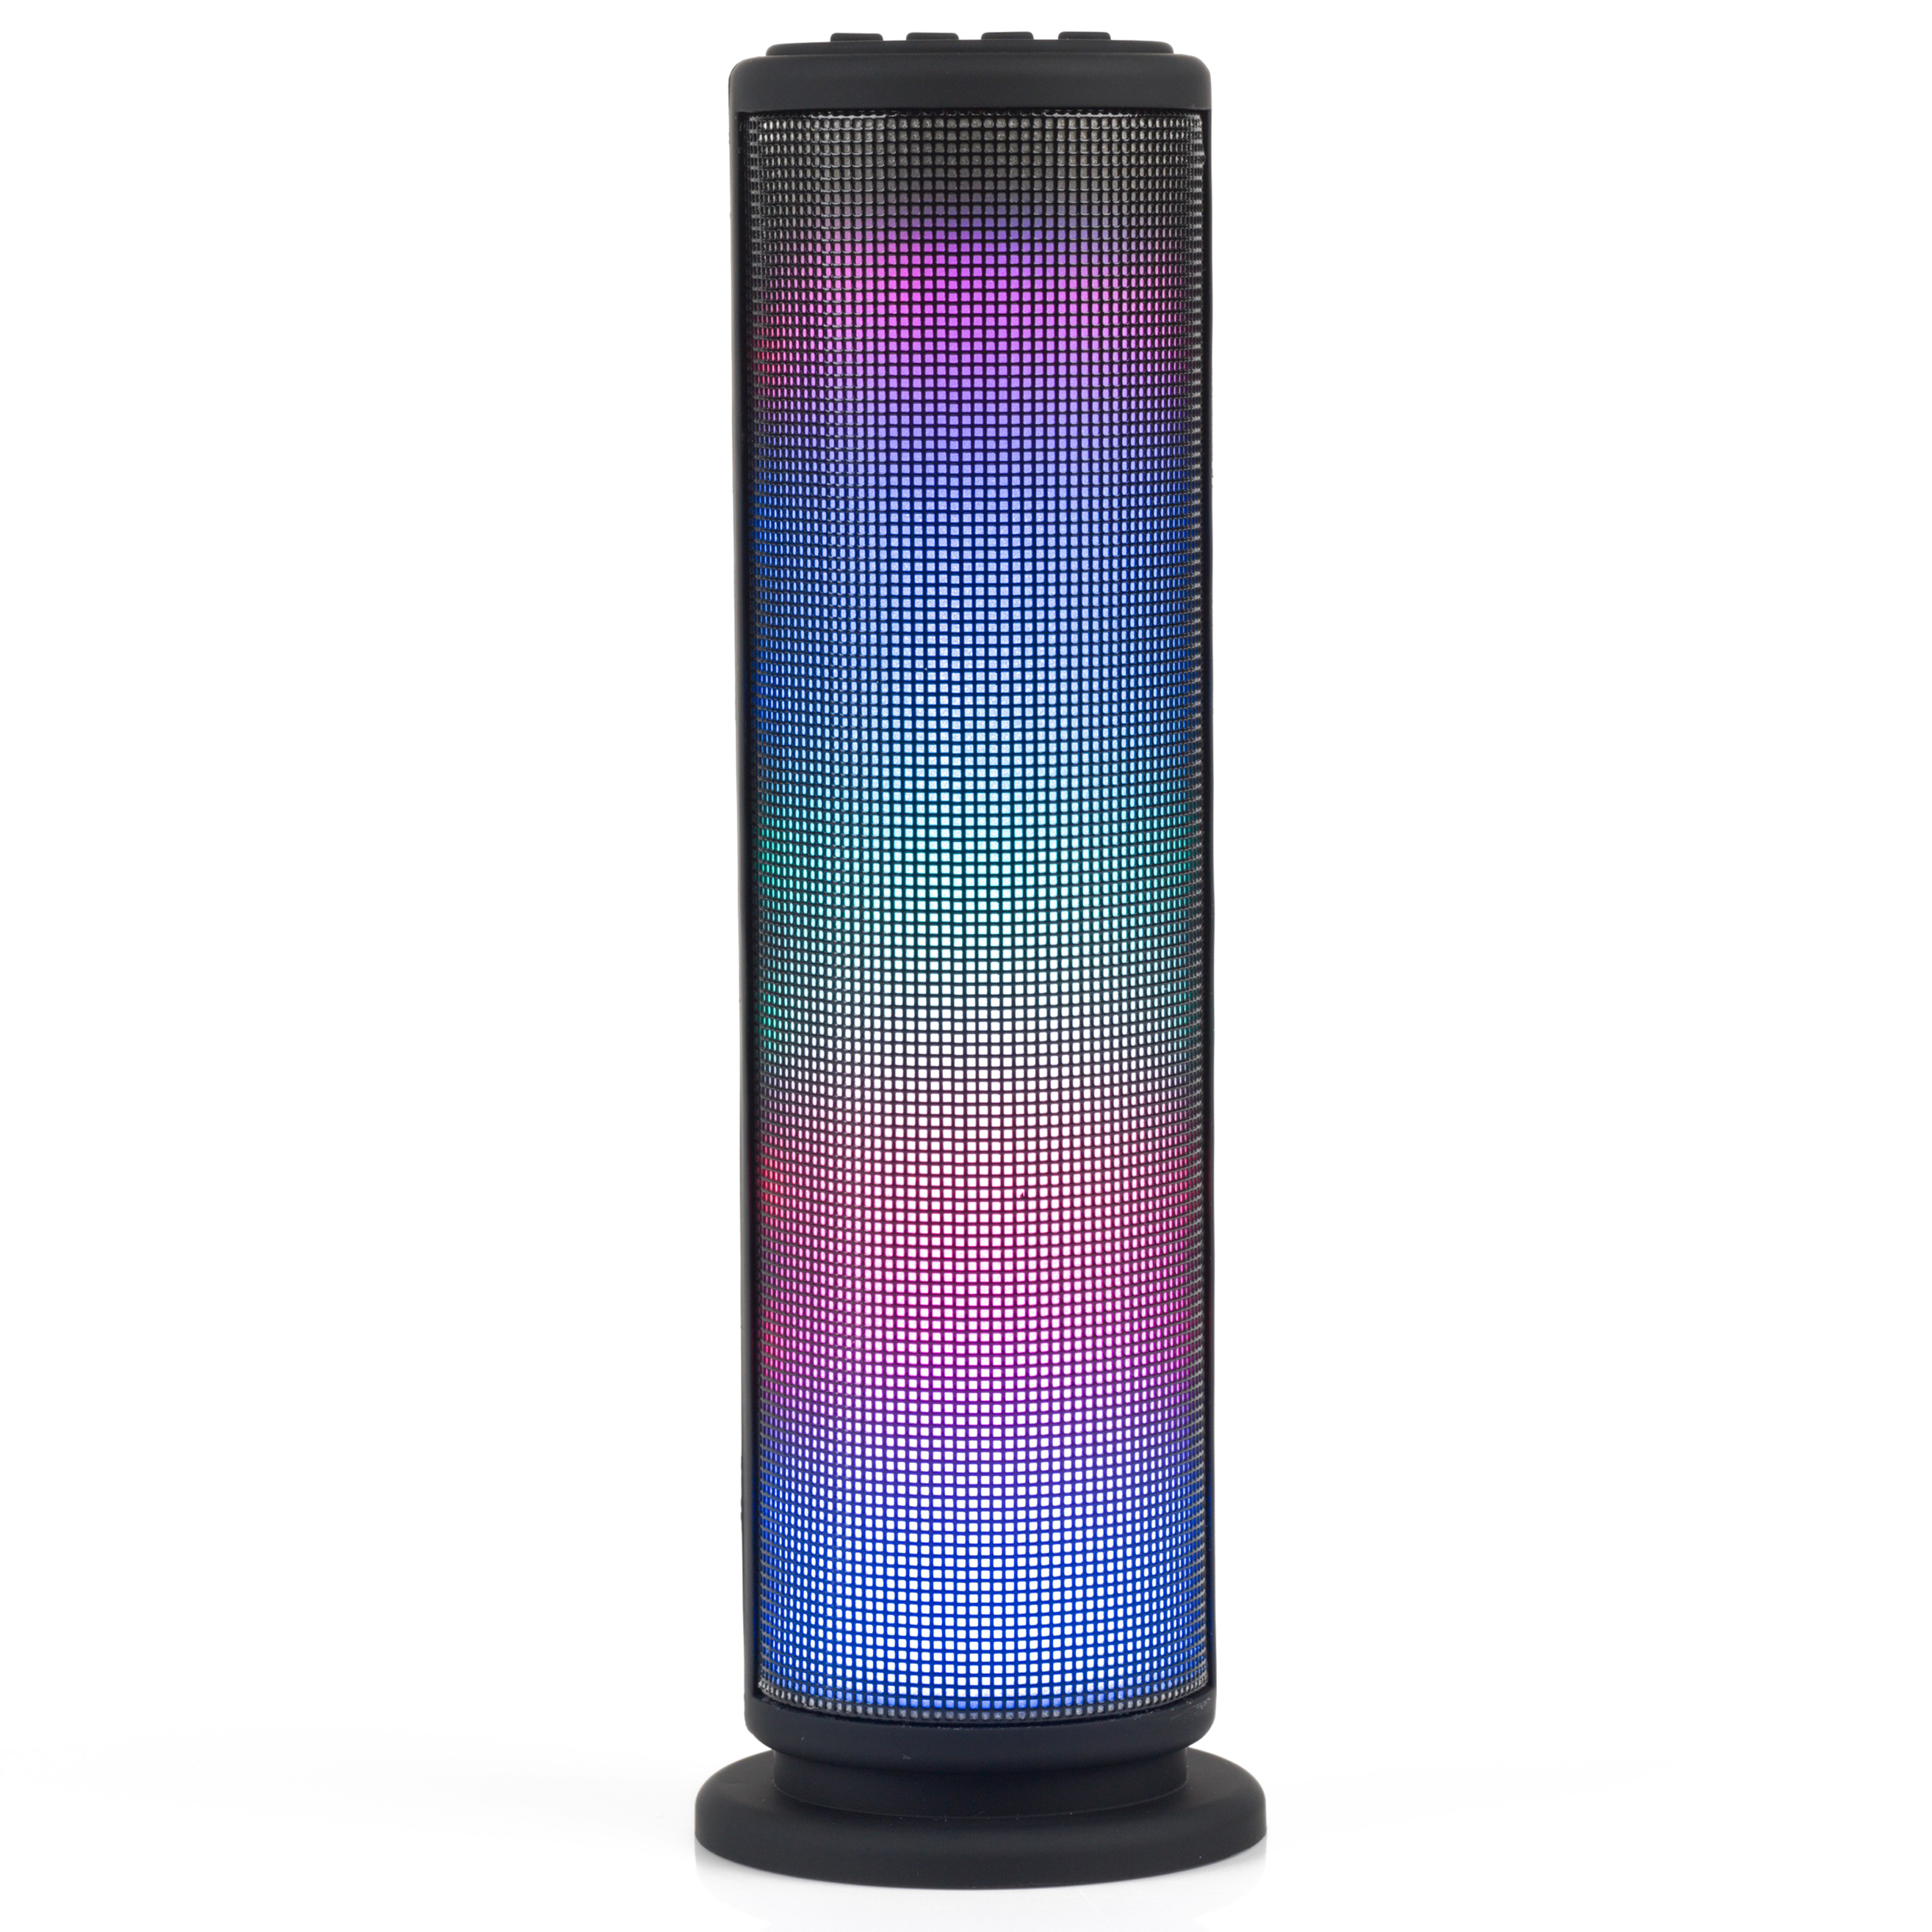 Intempo EE2928BLKSTK LED Light Tower Speaker, AUX, Bluetooth for iPhone,  iPad, Samsung Galaxy, Android and other Smart USB Devices, 3 W, Black